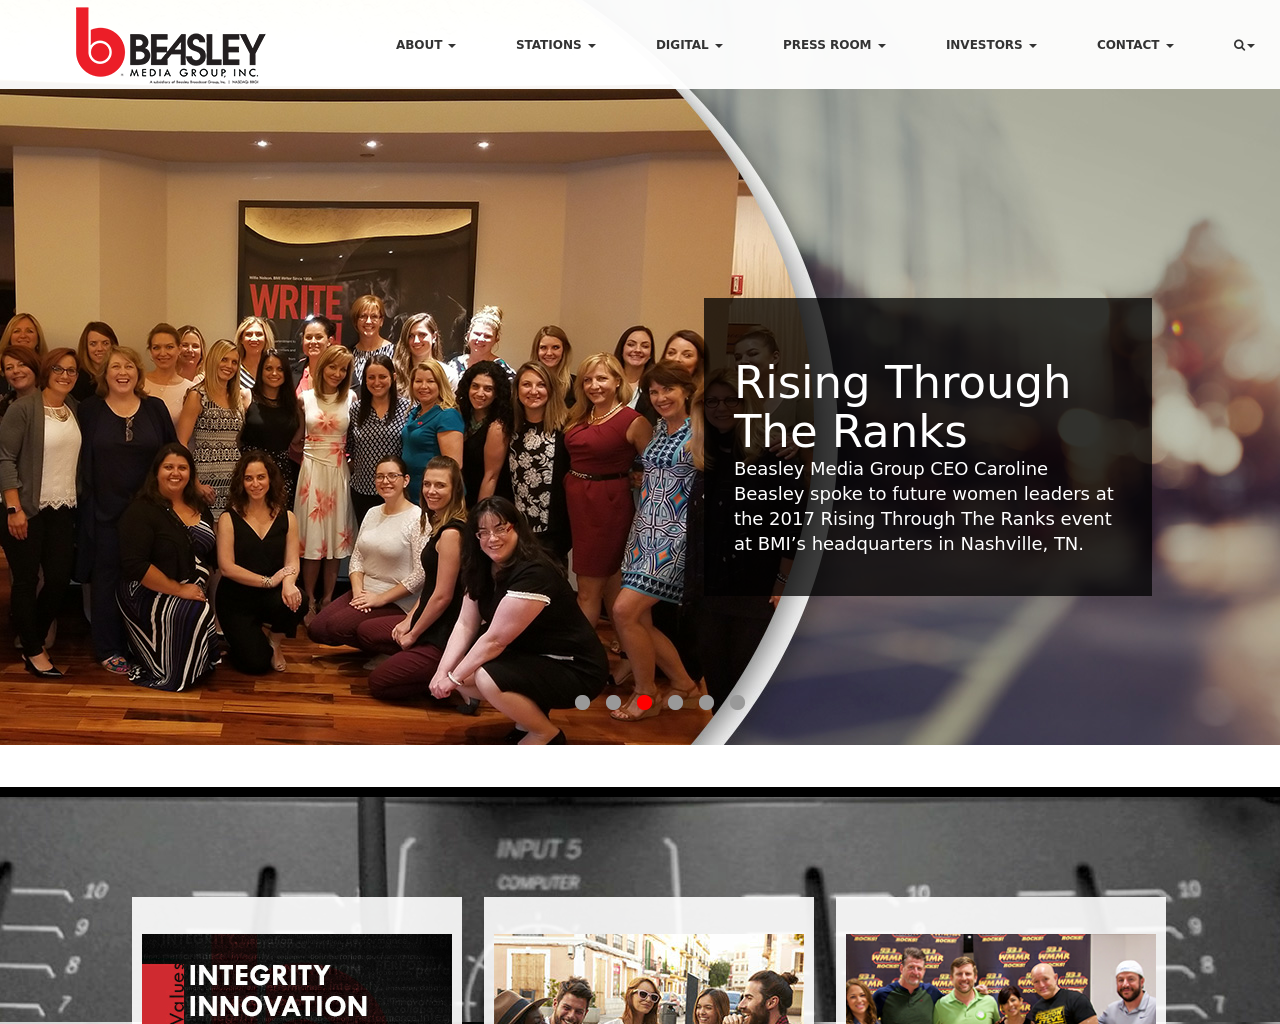 Beasley-Broadcast-Group,-Inc.-Advertising-Reviews-Pricing